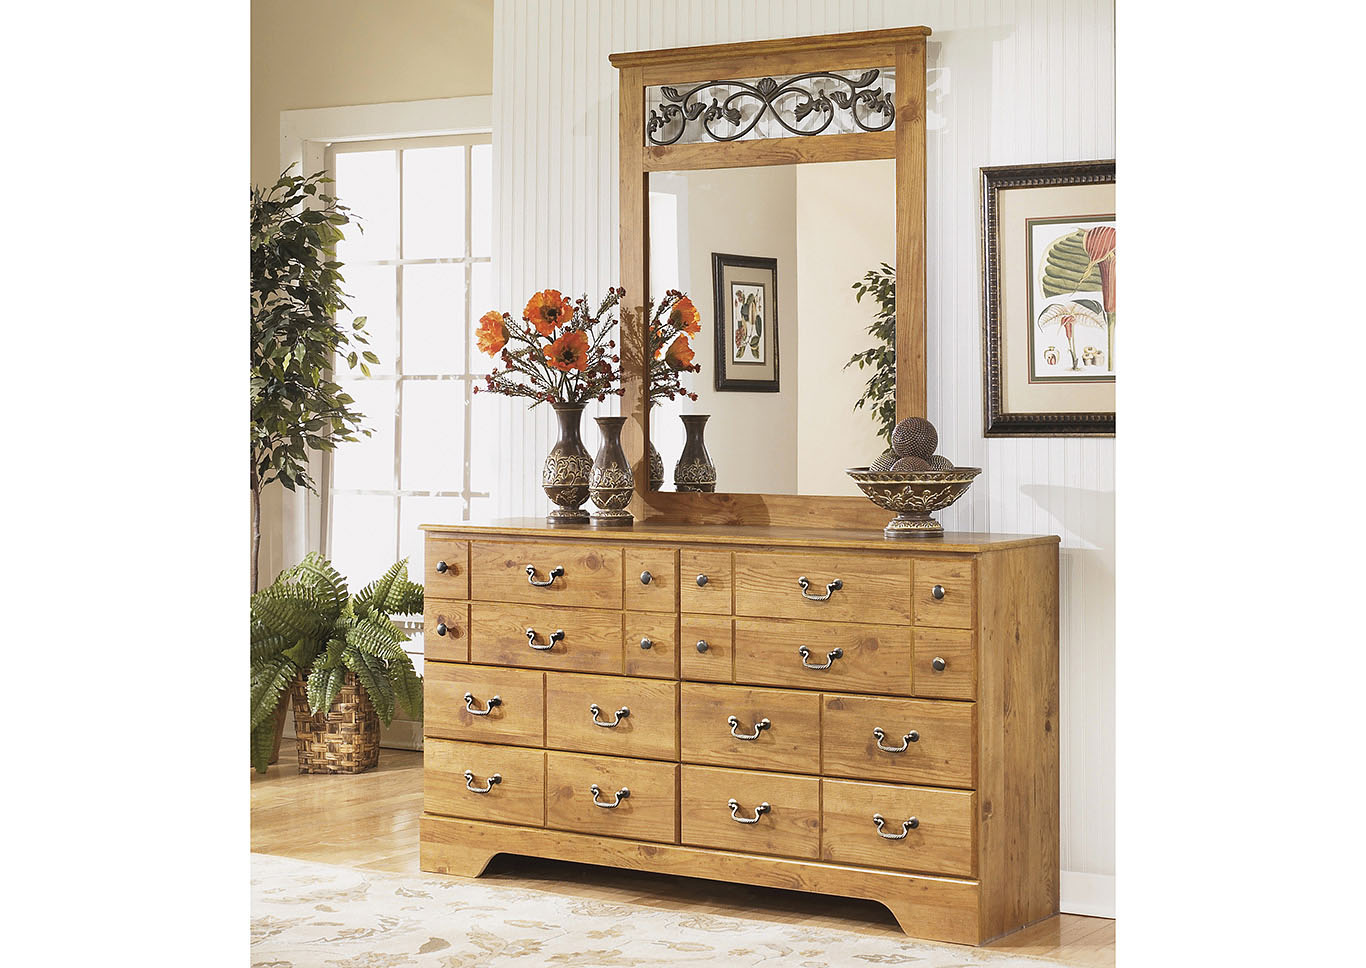 Bittersweet Dresser & Mirror,Signature Design By Ashley